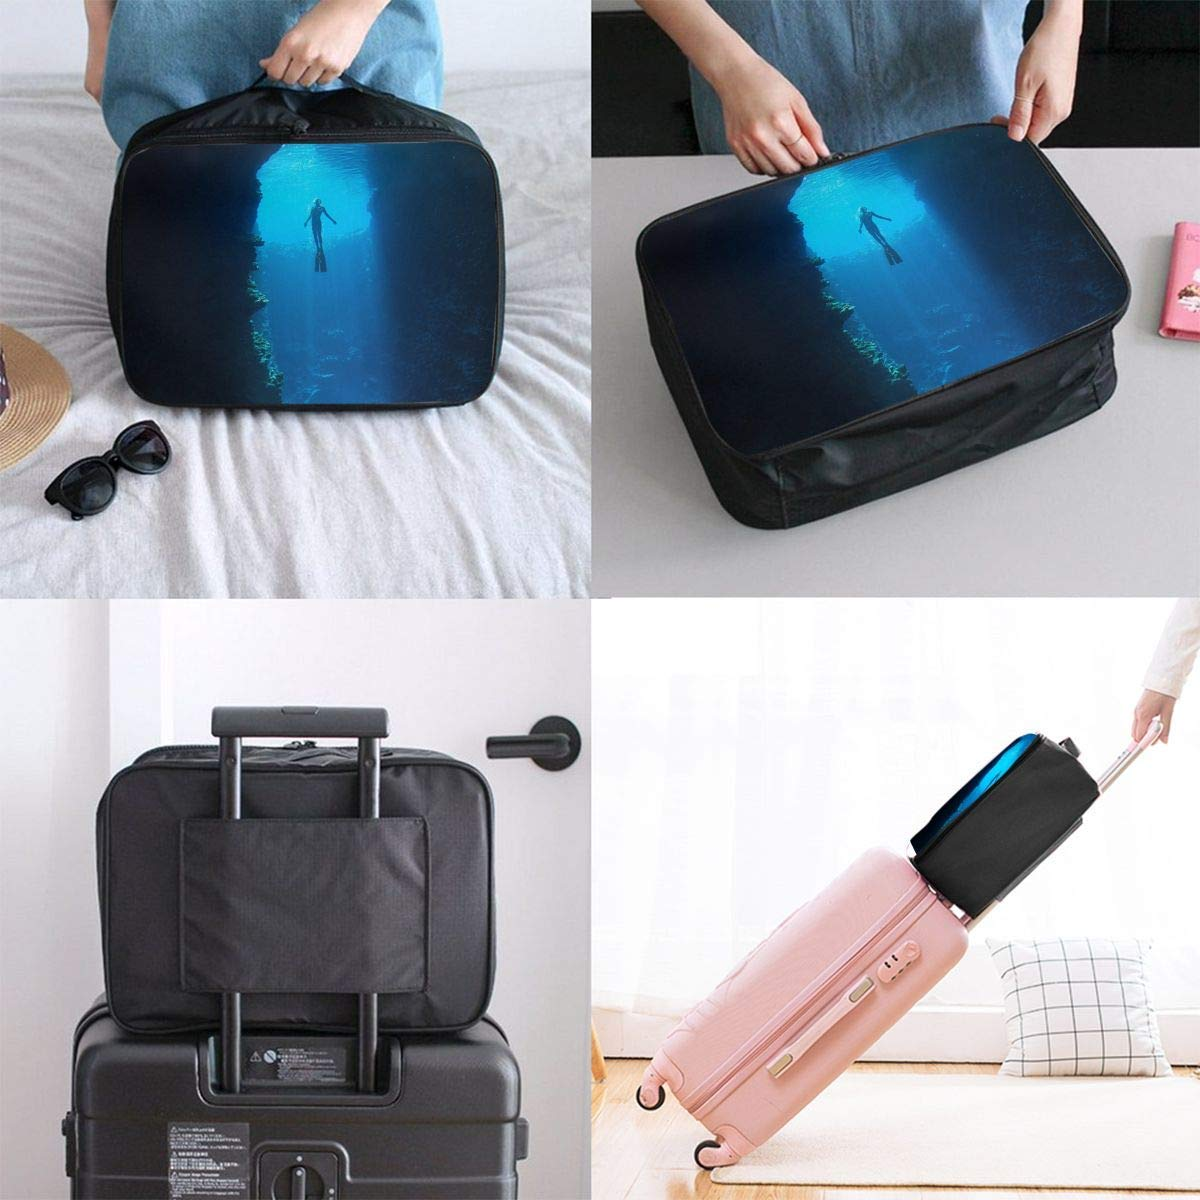 Lightweight Large Capacity Portable Duffel Bag for Men /& Women Free Diving Travel Duffel Bag Backpack JTRVW Luggage Bags for Travel